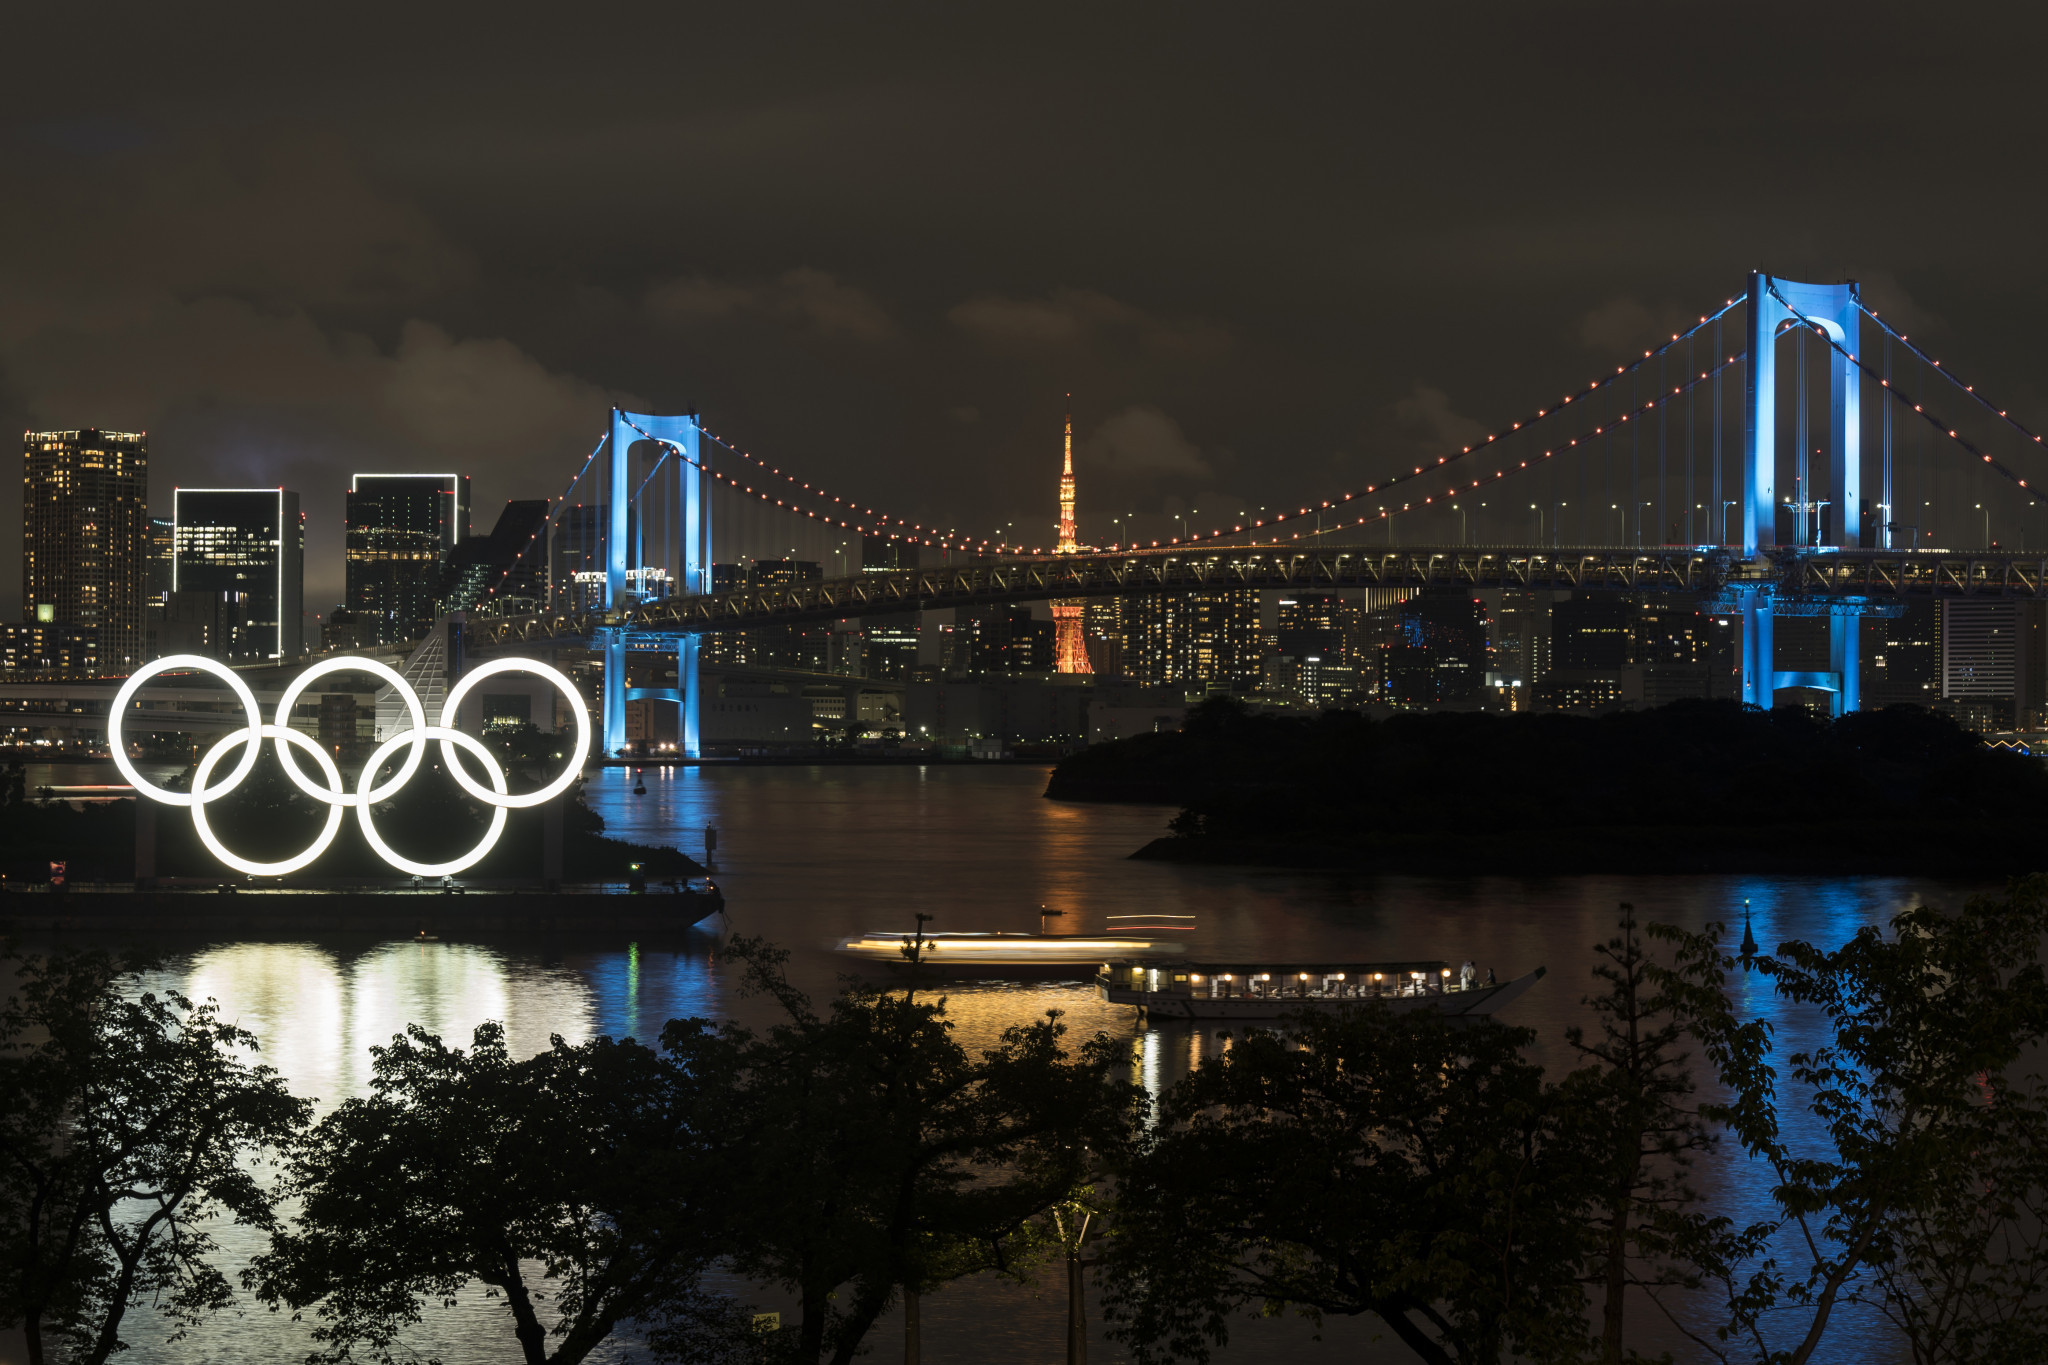 Olympics without fans would be possible, Japanese politician claims